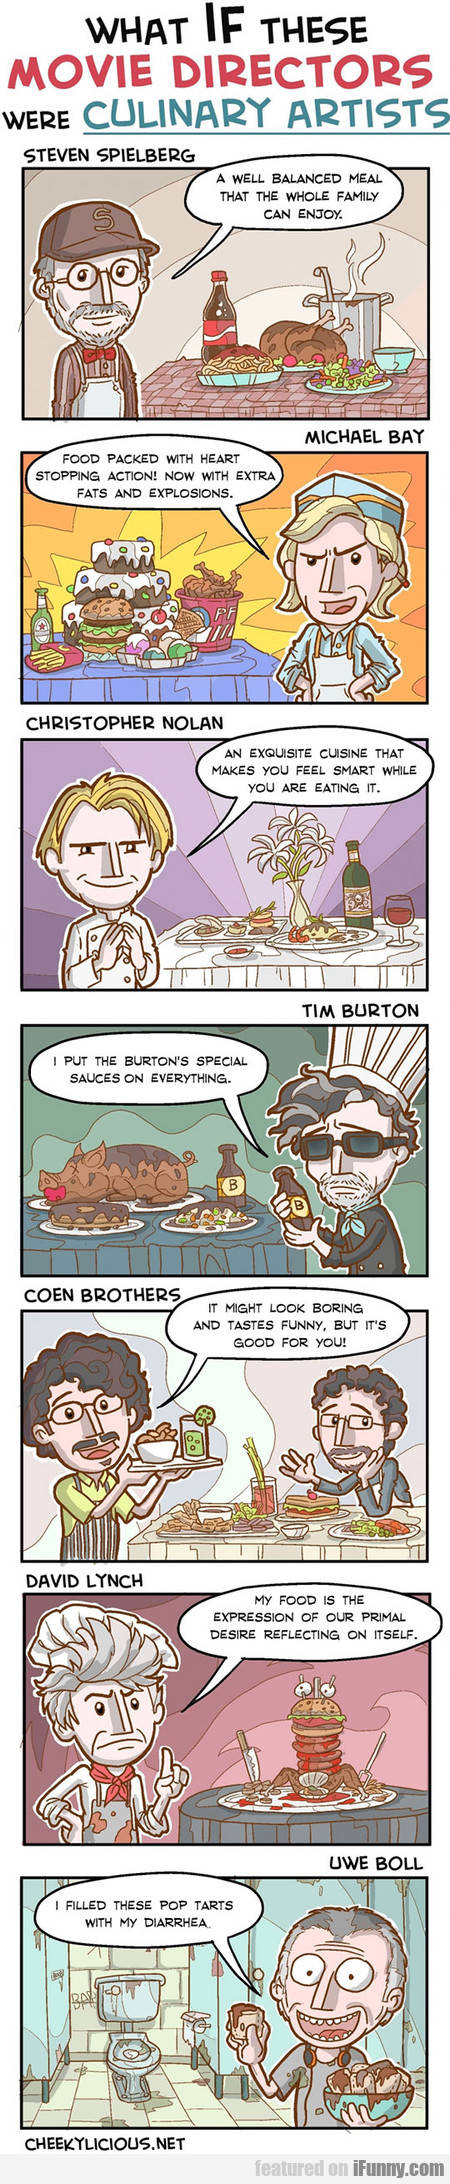 If Famous Movie Directors Were Chefs...